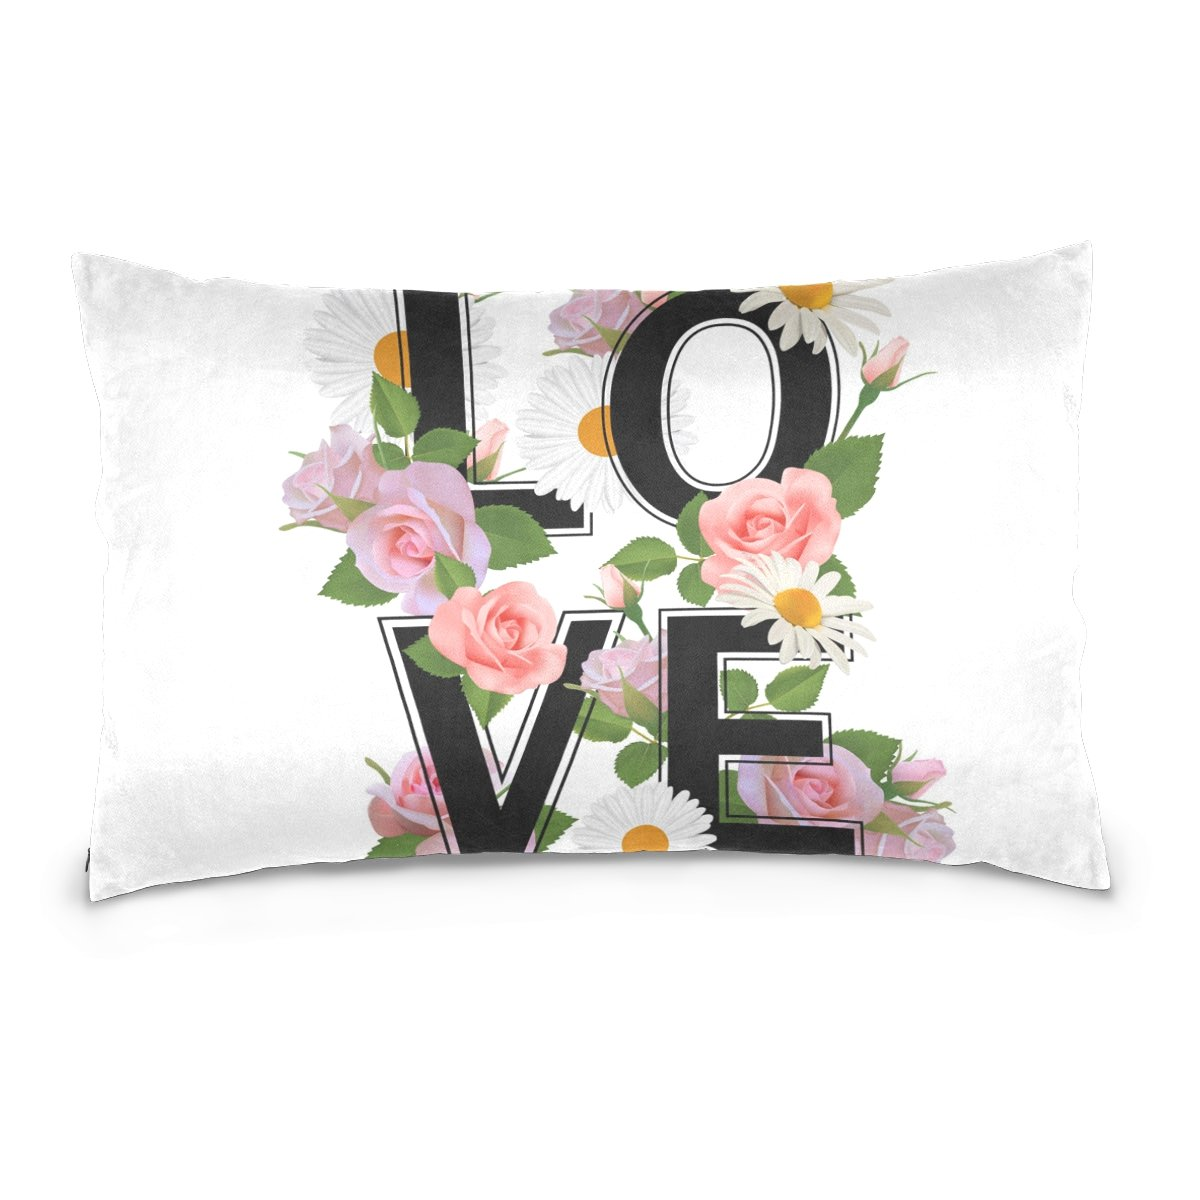 Top Carpenter LOVE Flowers Roses Velvet Oblong Lumbar Plush Throw Pillow Cover/Shams Cushion Case - 20x26in - Decorative Invisible Zipper Design for Couch Sofa Pillowcase Only